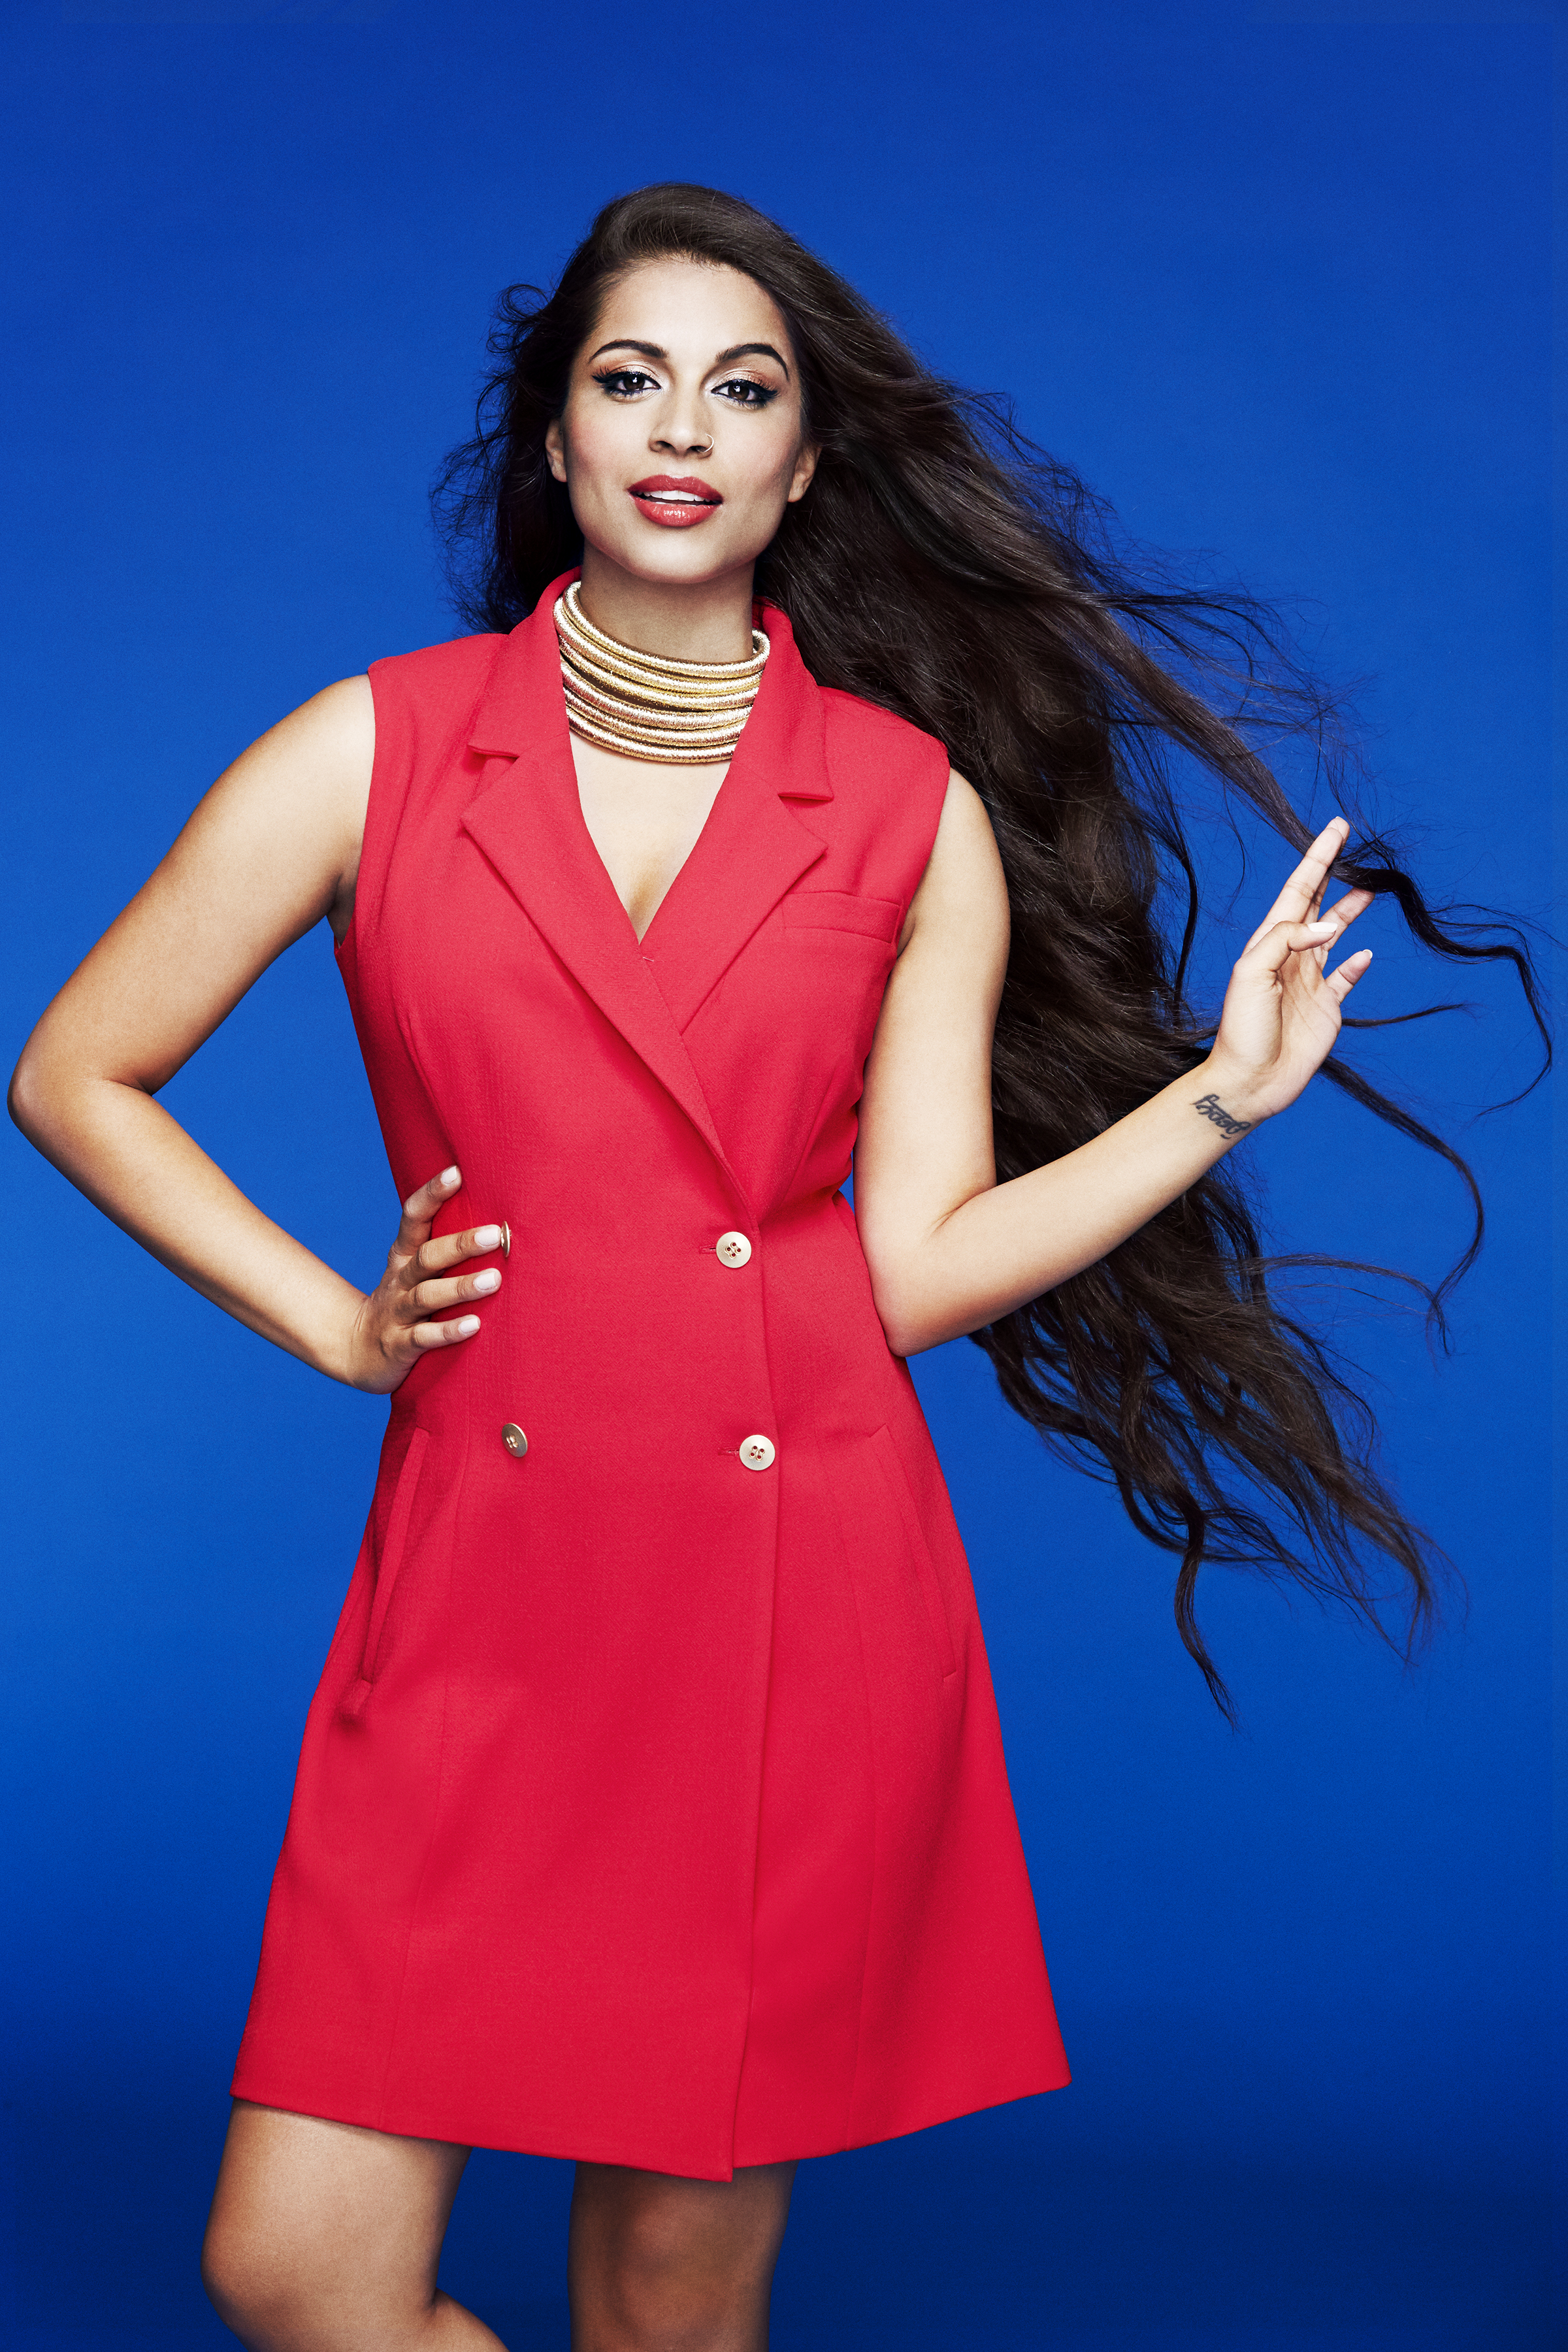 Lilly Singh – How To Be A Bawse